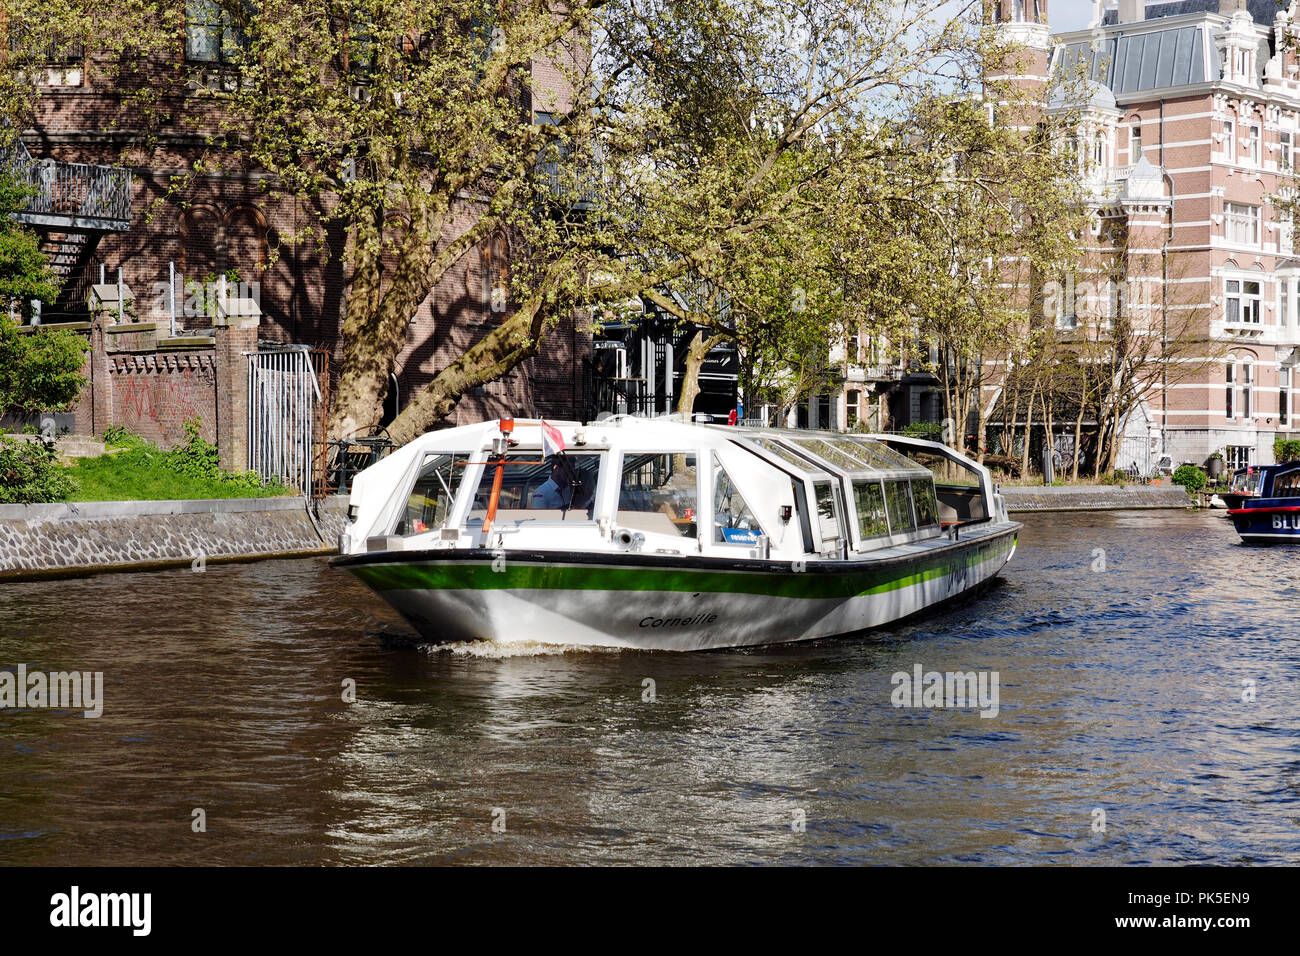 Amsterdam canal scene with large tour boats on the main canal by Stadhouderskade. These boats provide trips along the canals and harbour for tourists. Stock Photo